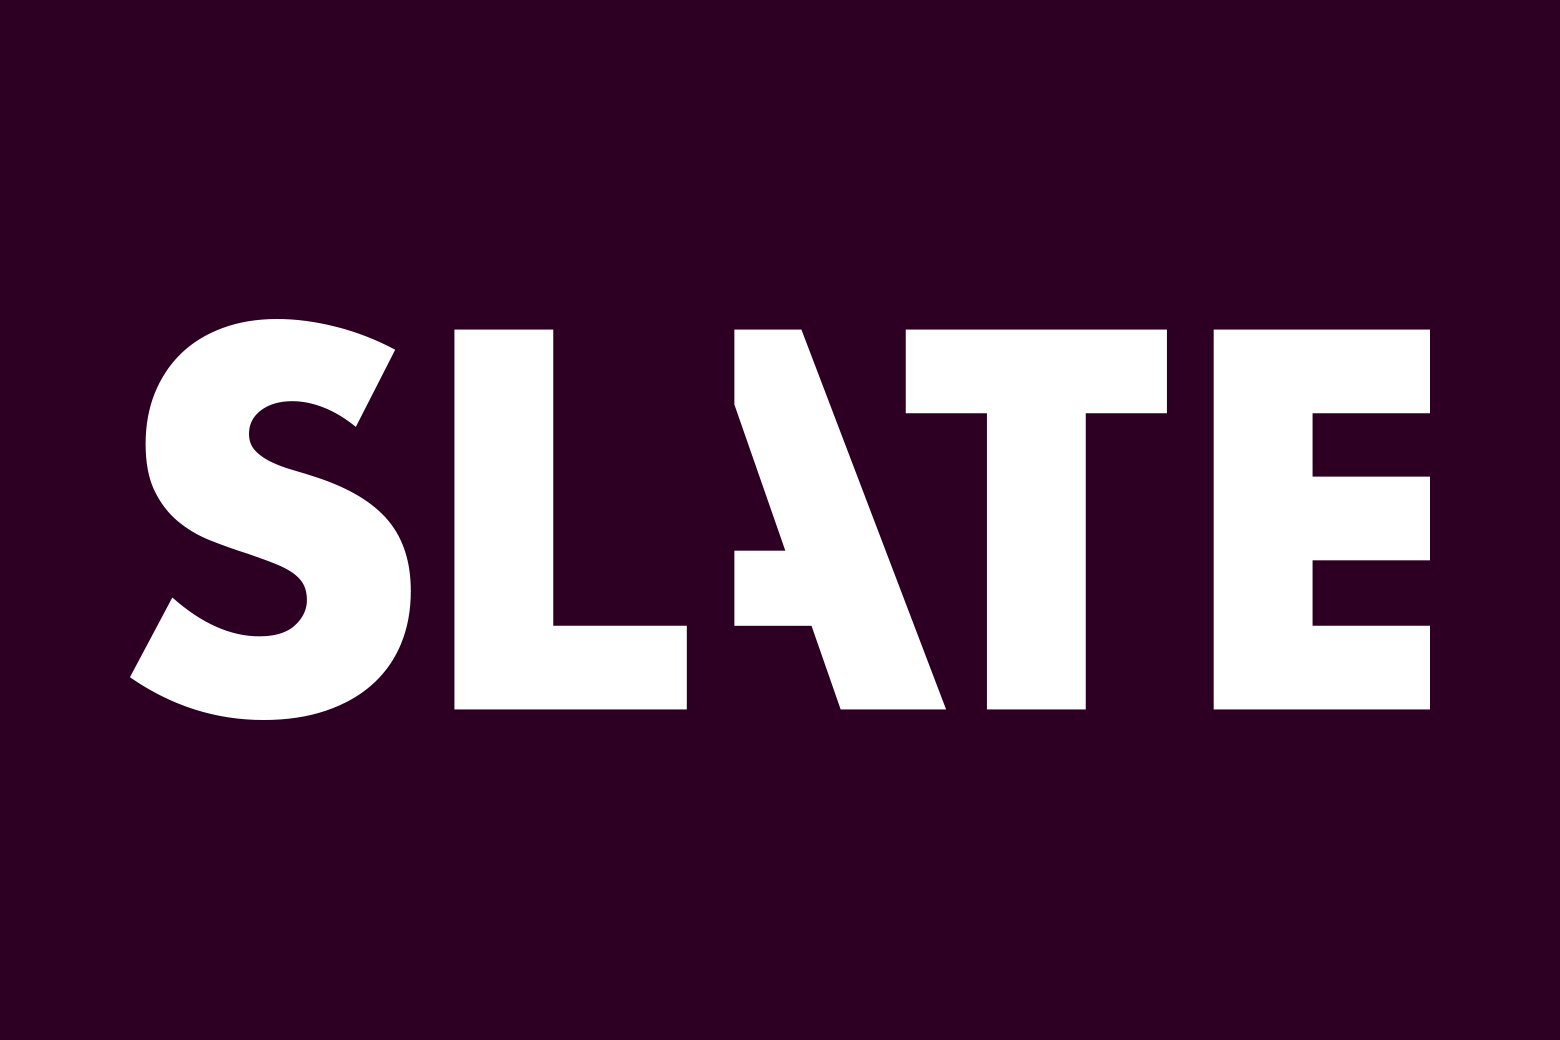 The new Slate logo.